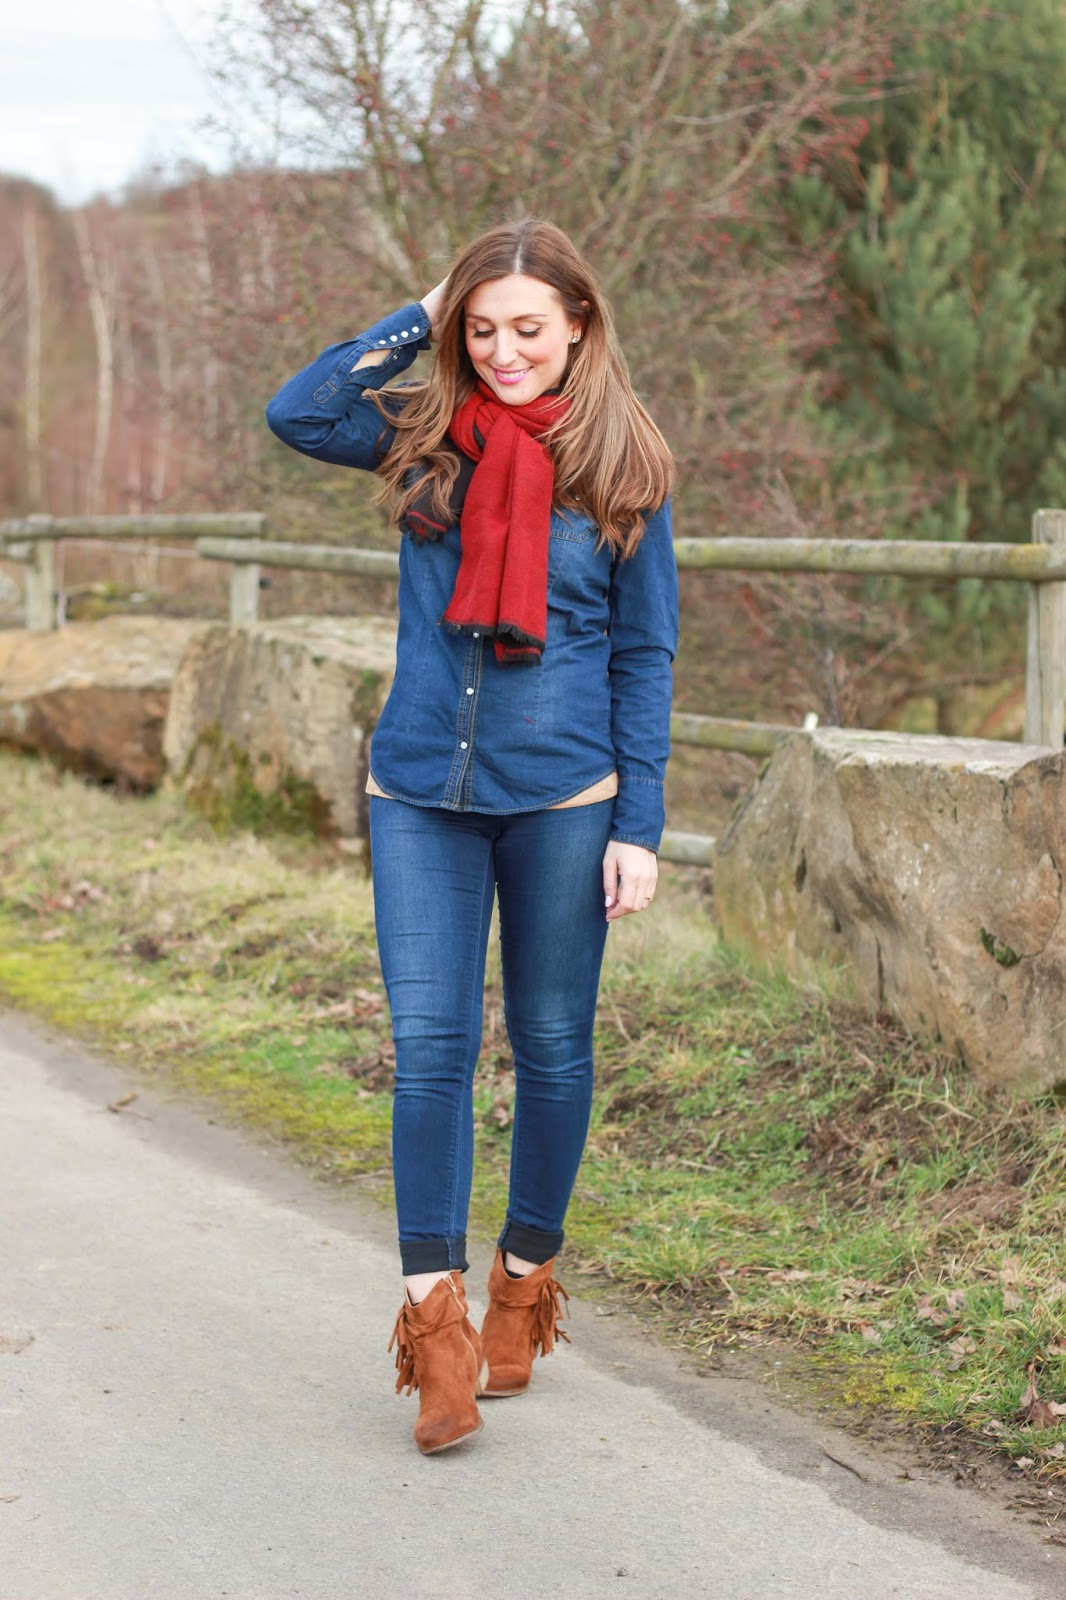 Roter Schal - Deutschlands beste Modeblogger - Modeblogger aus Deutschland - Deutsche Modeblogger - Fashionblogger - Fashionblog - Deutsche Fahionblogger - German Fashionblogger - Fashionblogger from Germany - Denim Look - Denim Outfit